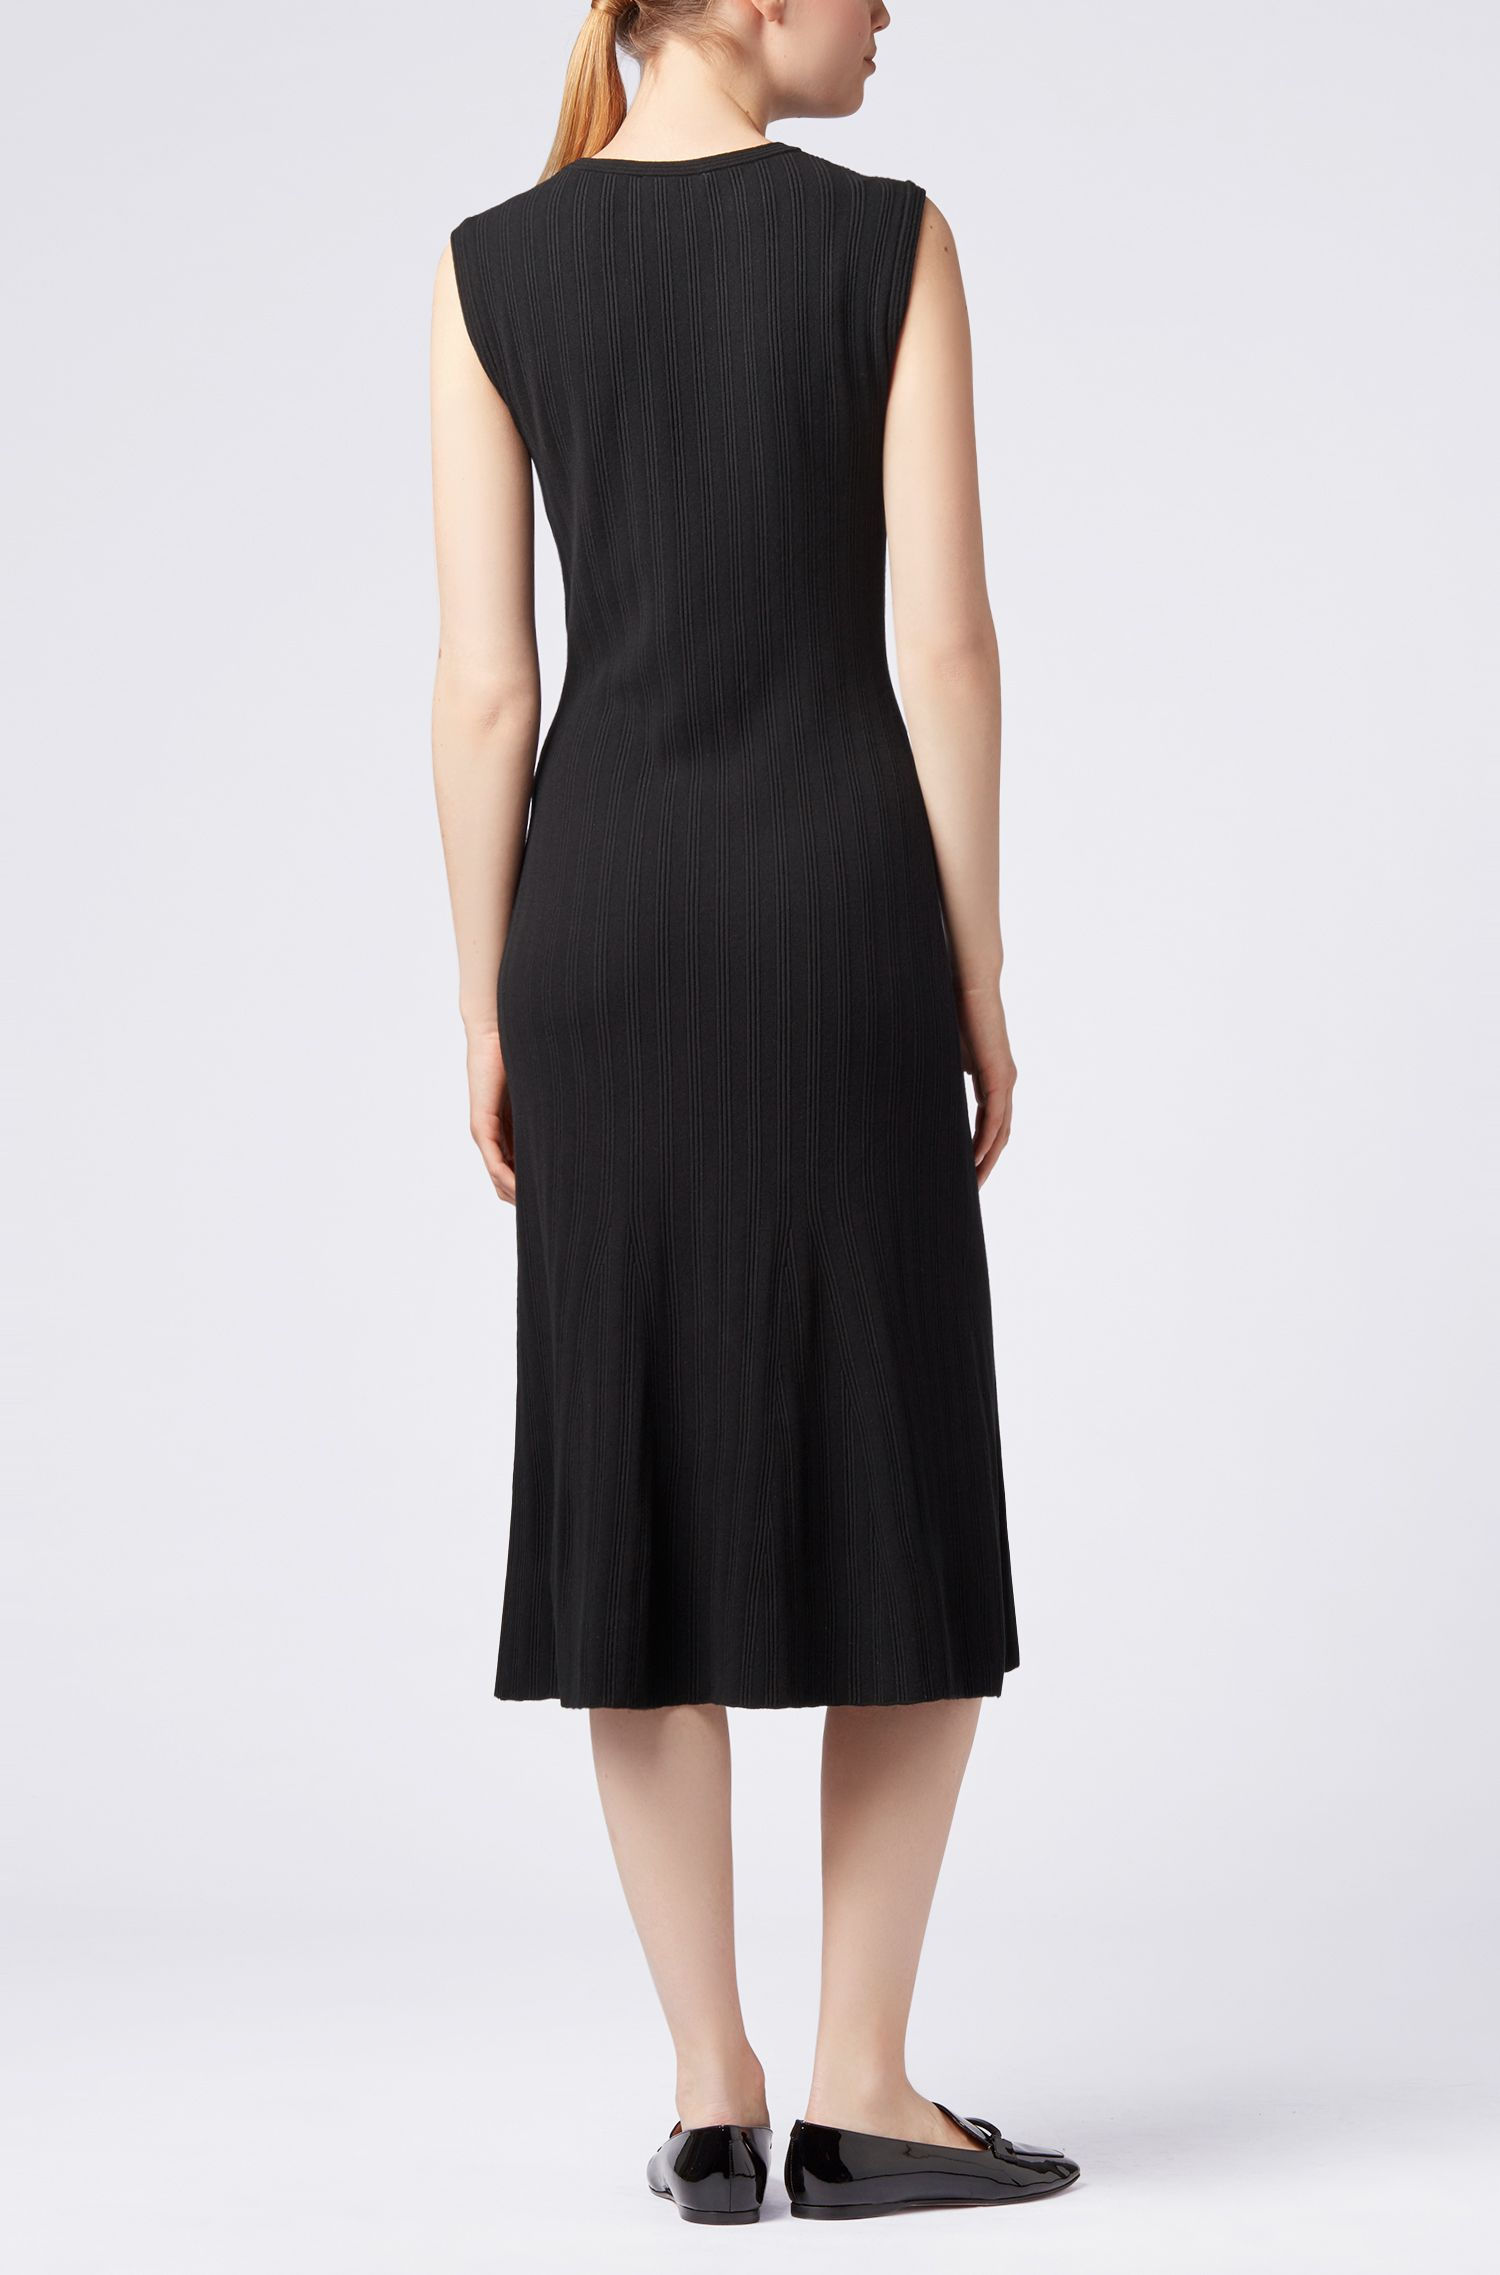 Sleeveless midi dress in a structured knit with flared skirt